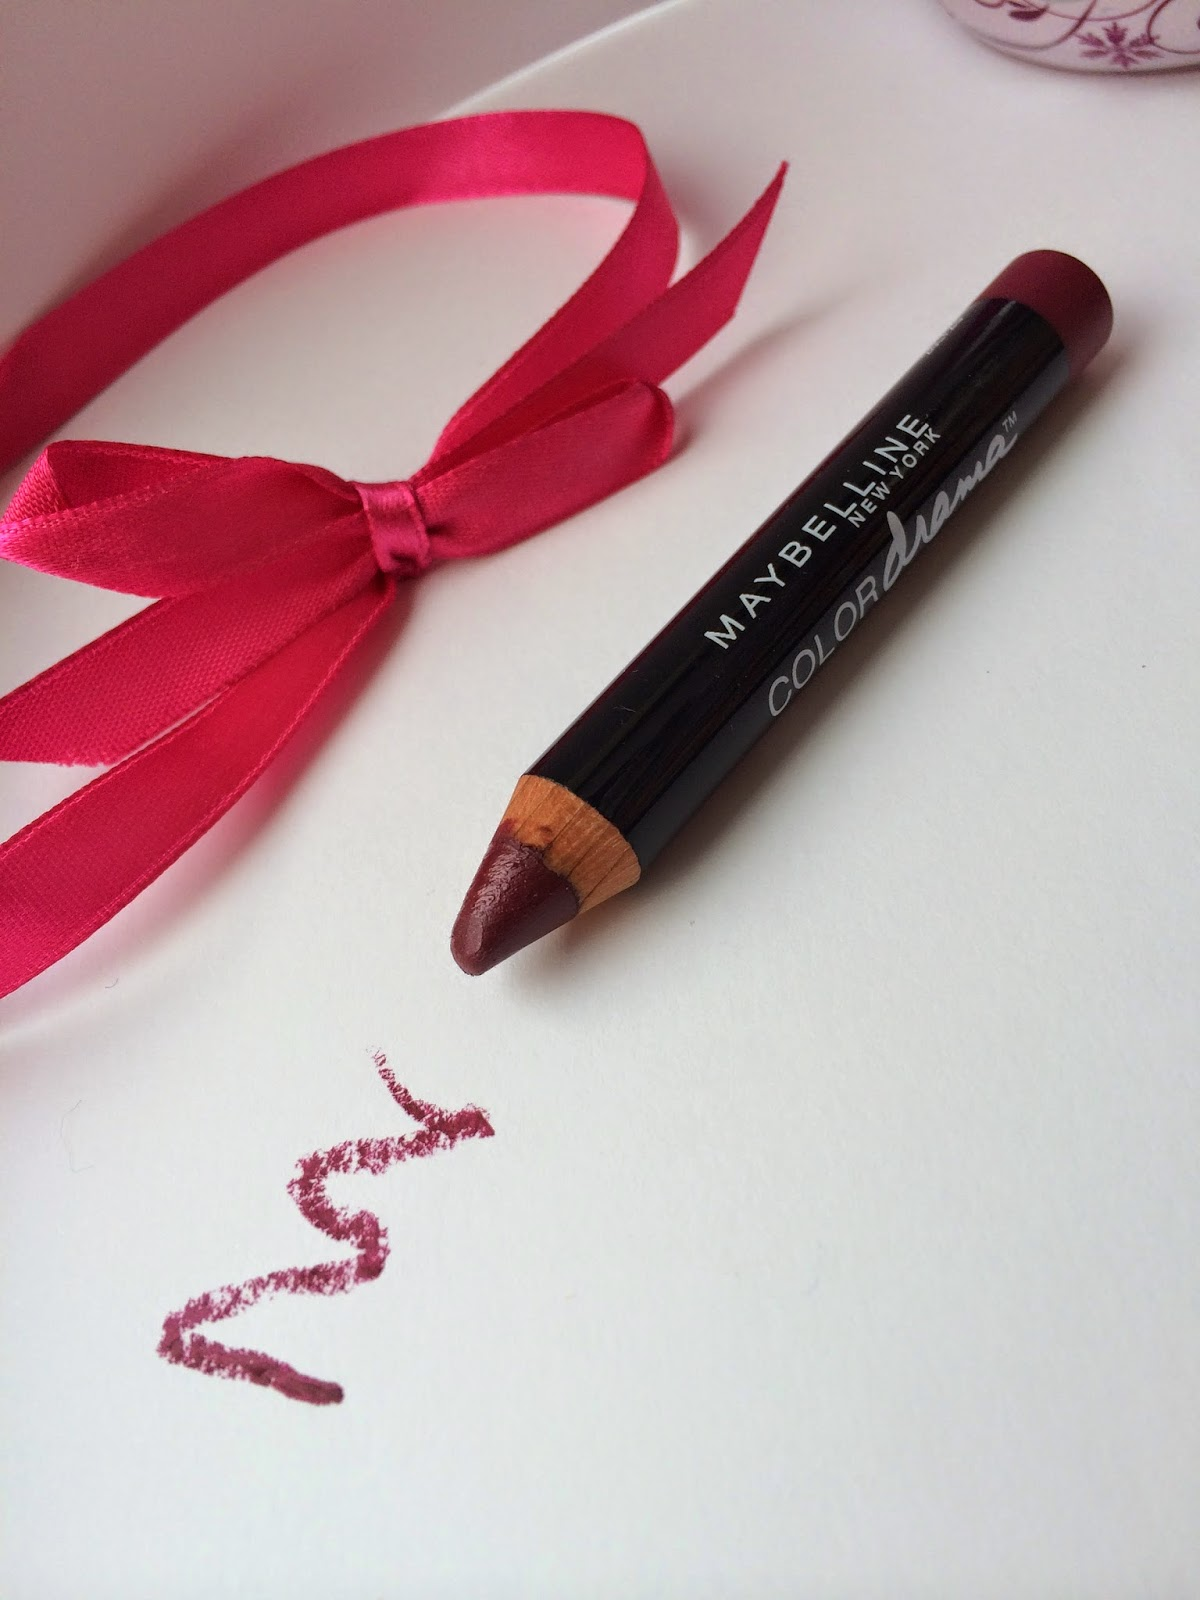 maybelline-color-drama-intense-velvet-lip-pencil-Berry-Much